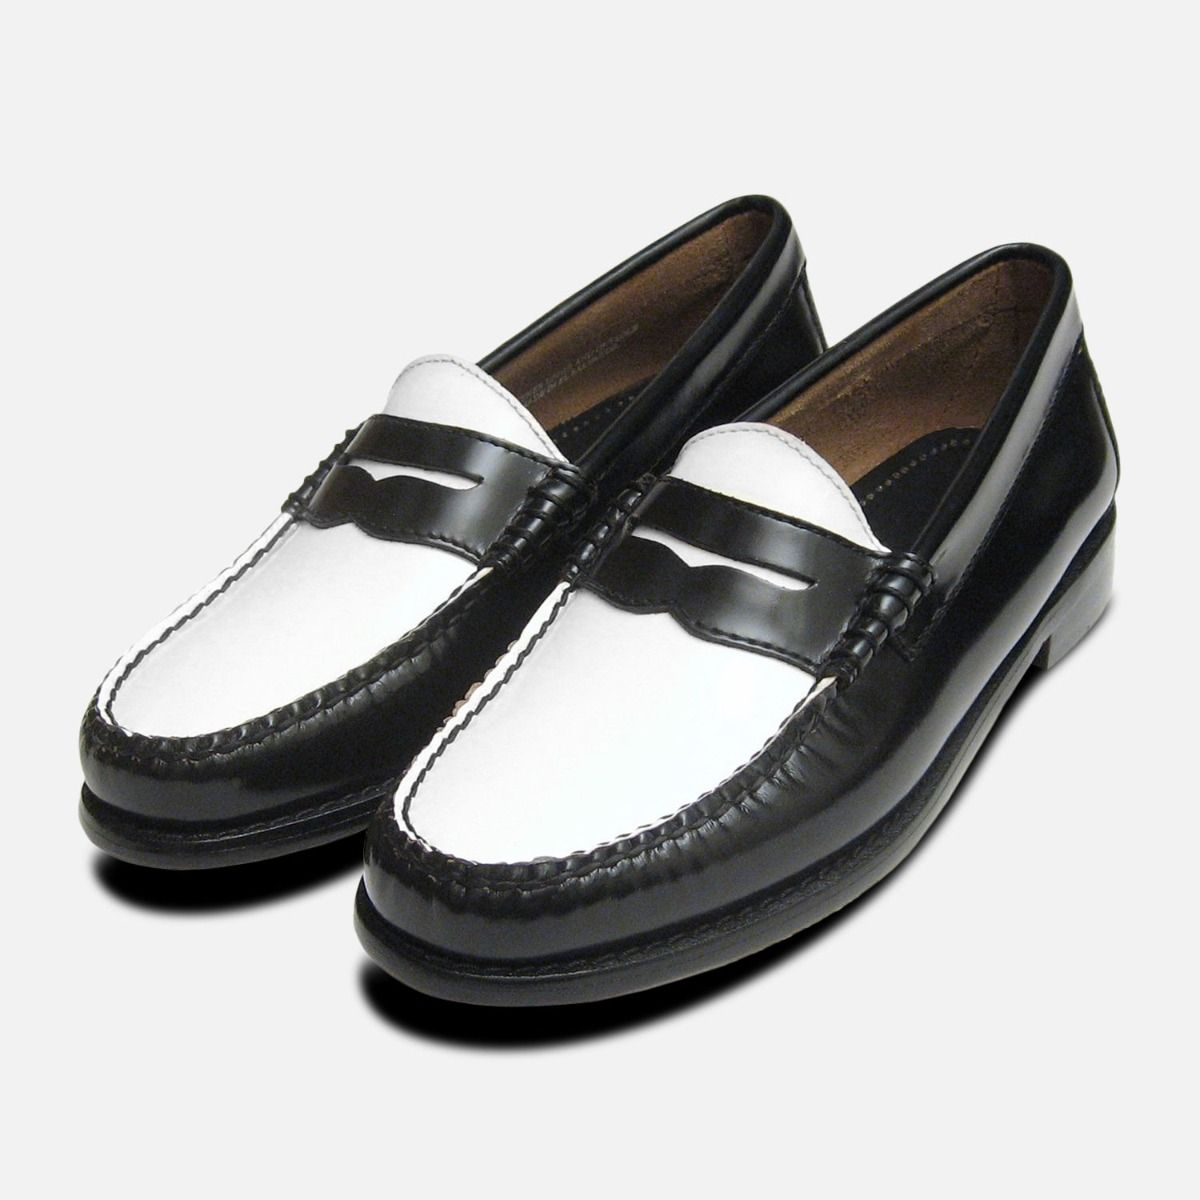 c612a8b4b8f Black   White Ladies Penny Loafers